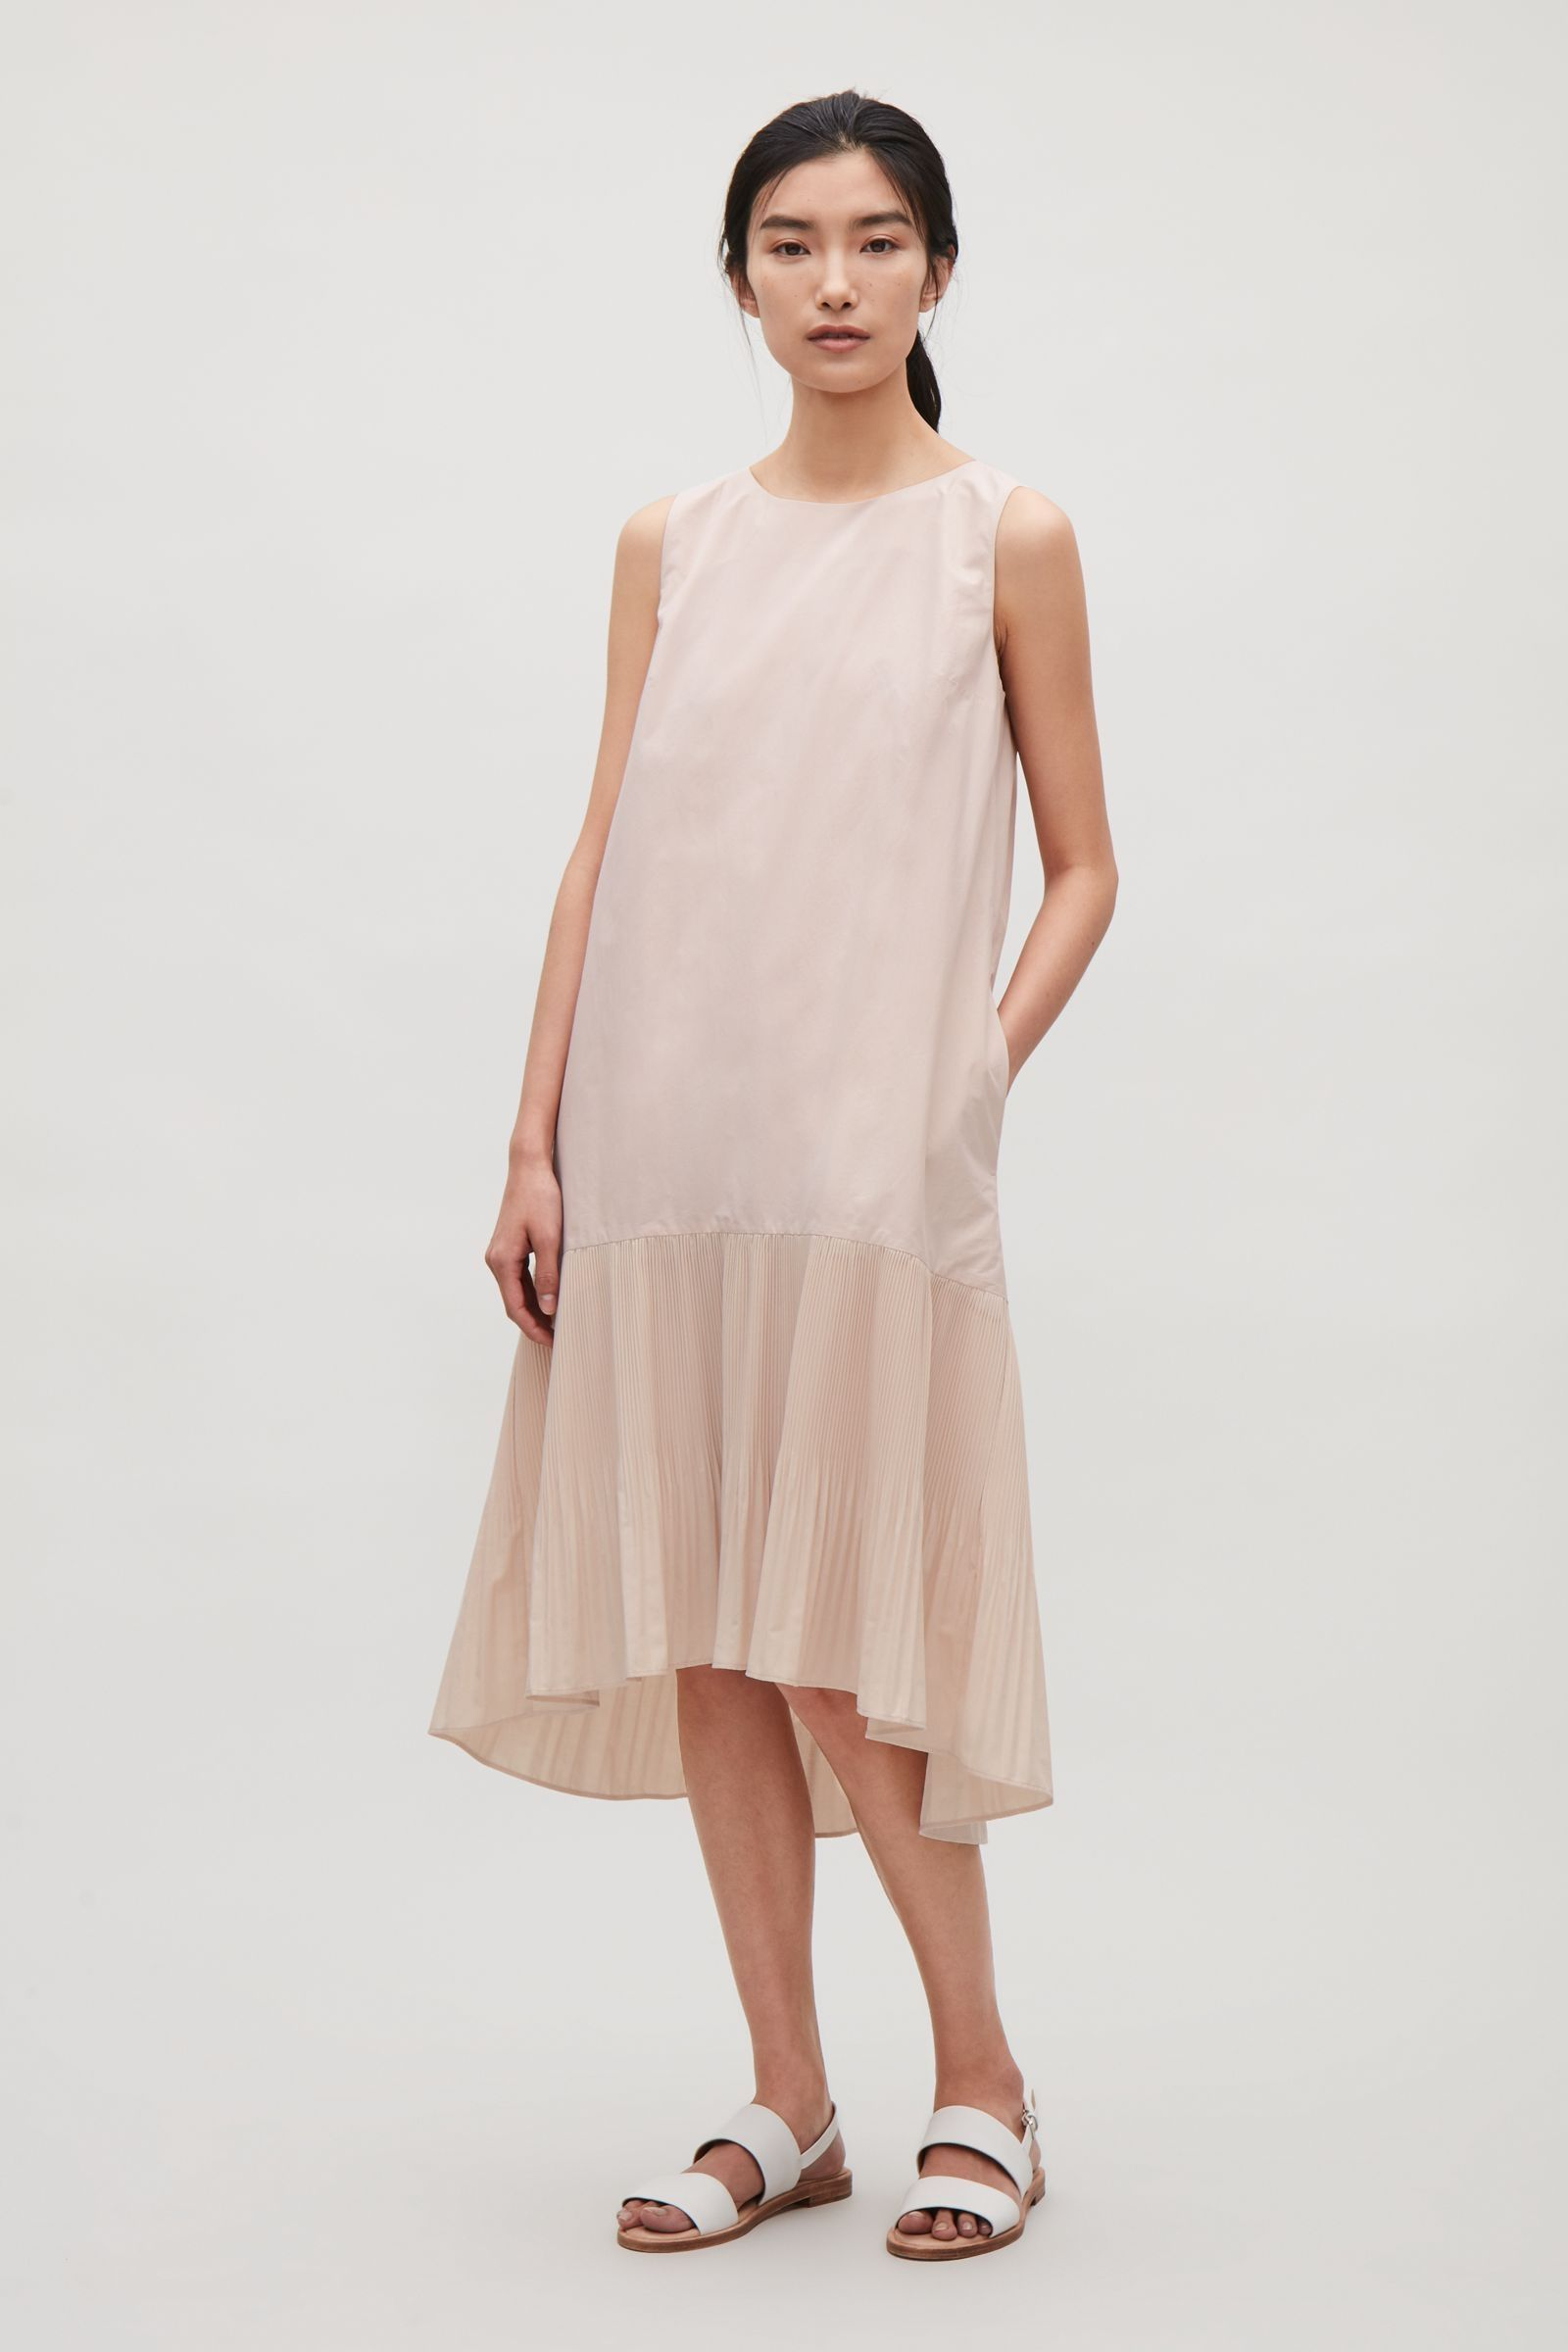 ac48c5998 COS image 1 of Voluminous pleat dress in Rose Pink | party dress ...